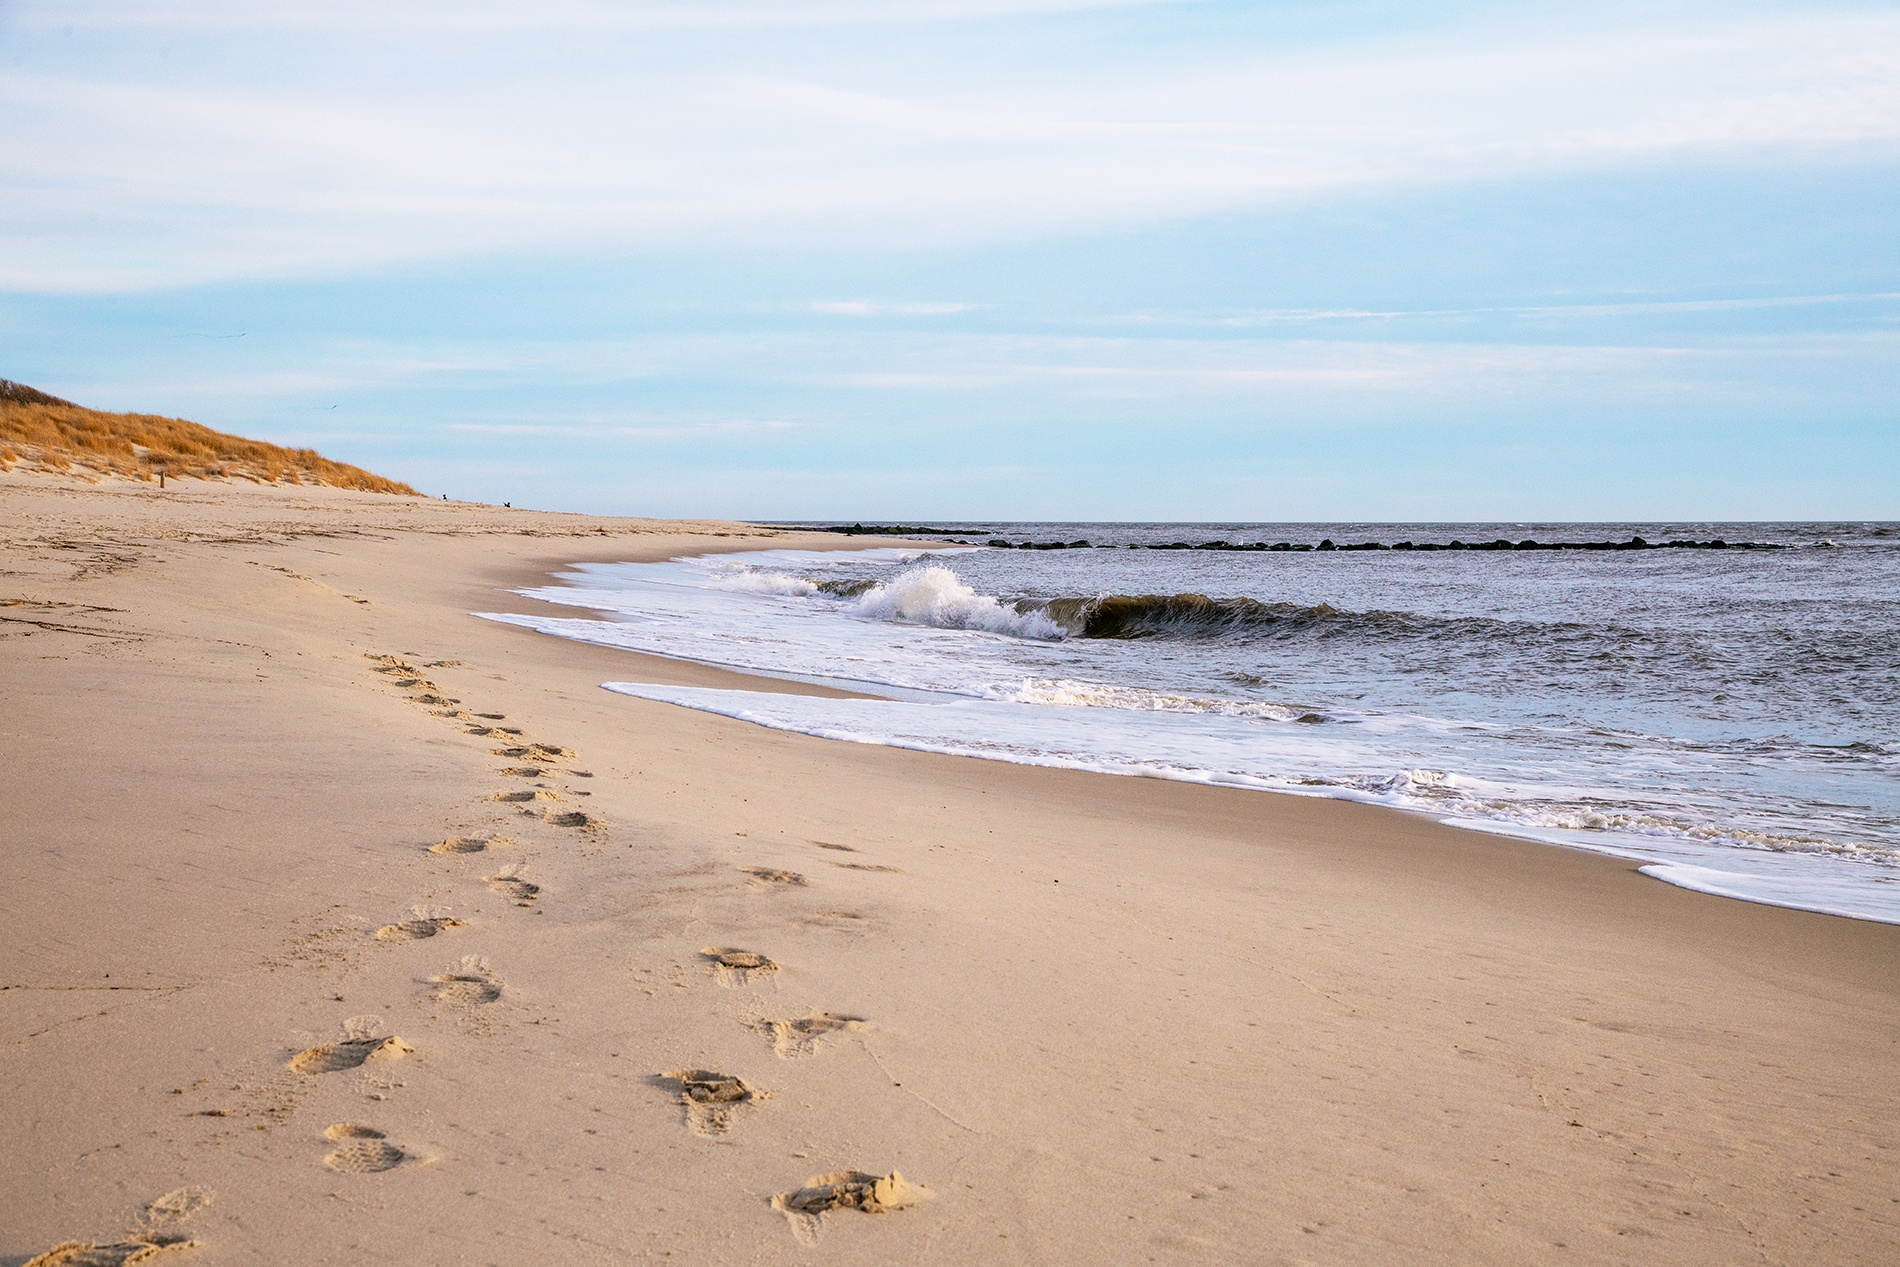 Two pairs of footprints in the sand as a wave crashes on the shore on an overcast day